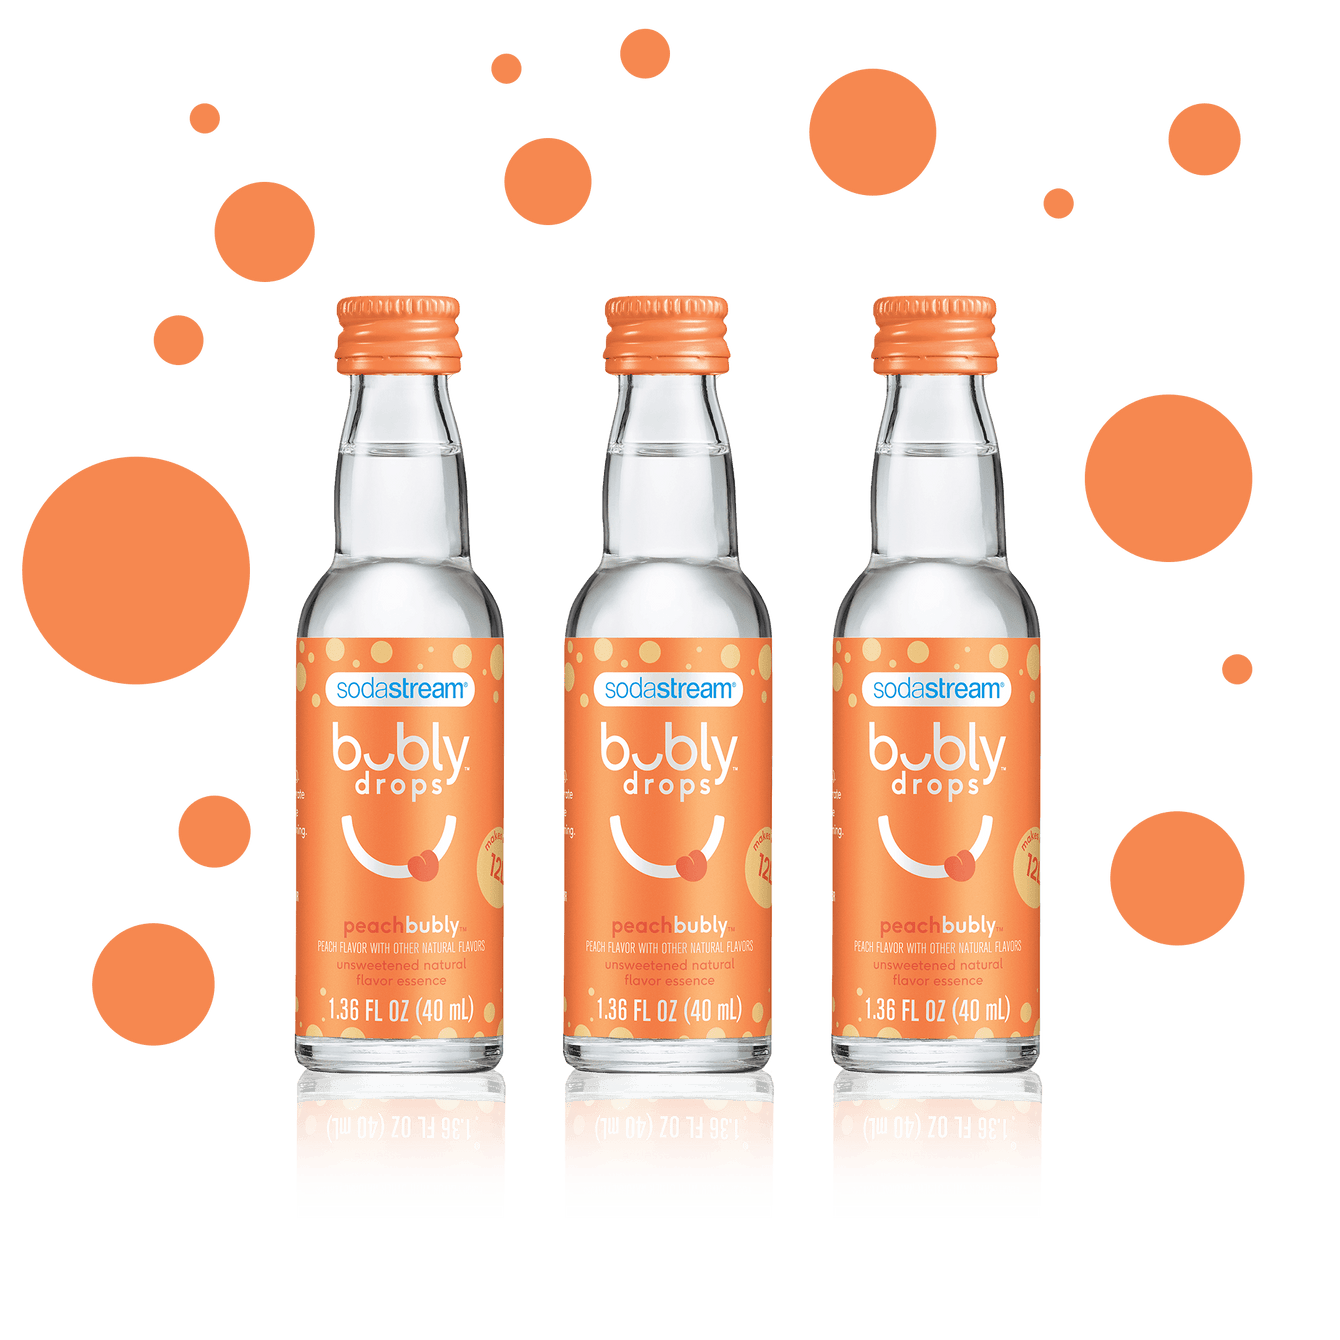 peachbubly drops™  3 Pack